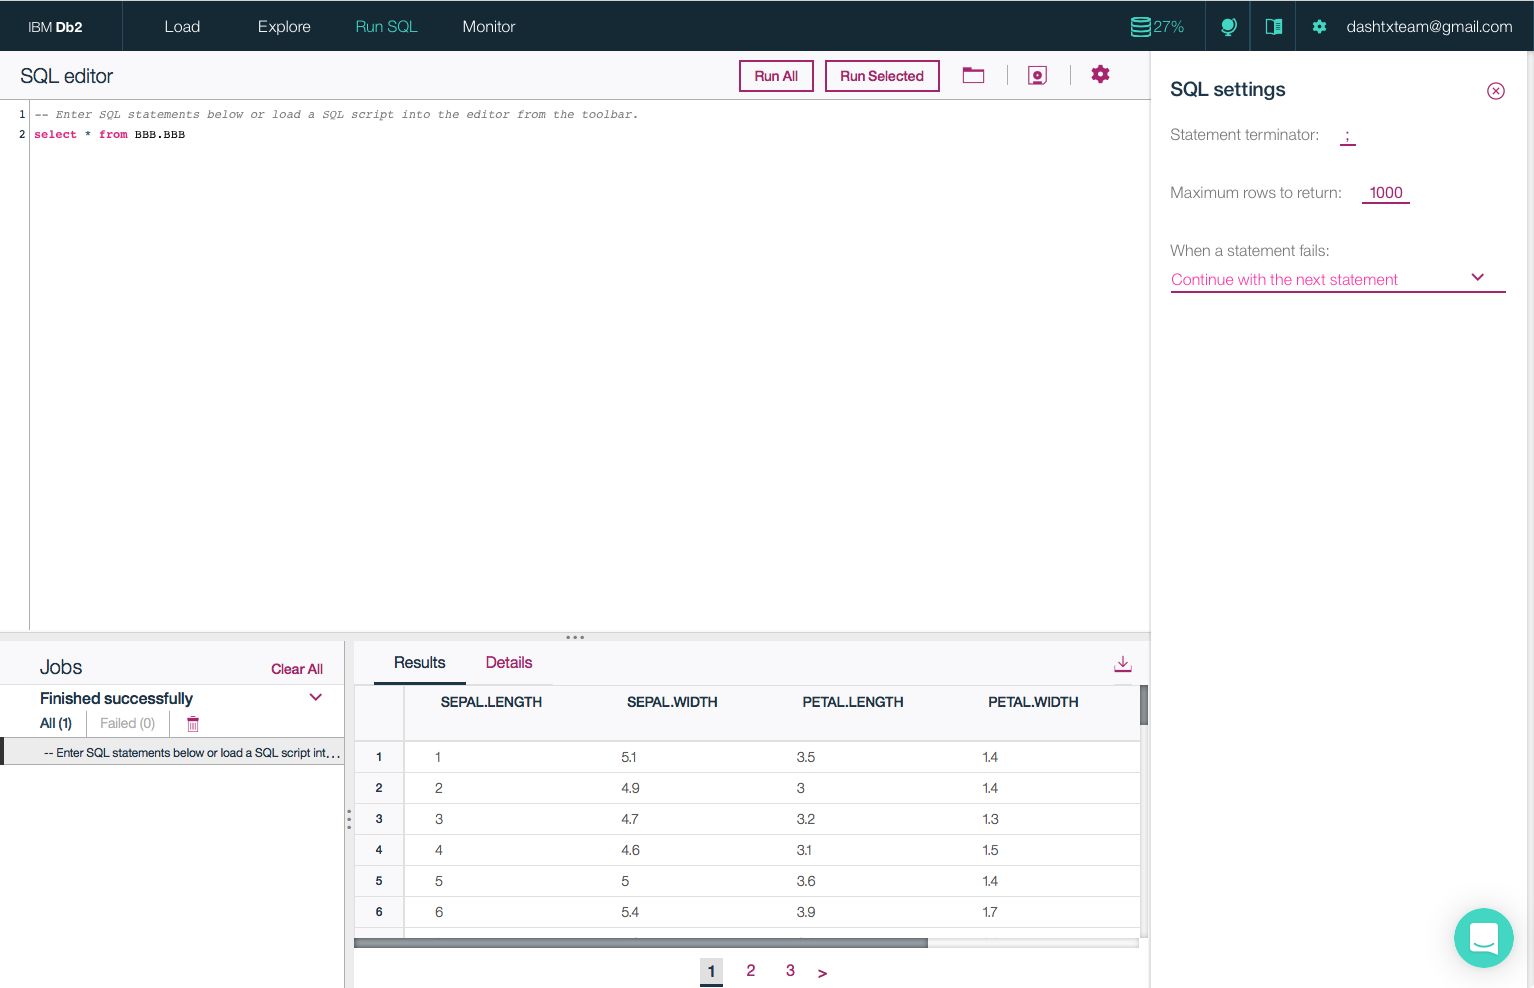 screencapture of how to get started right away using the easy-to-use SQL Editor for your cloud database